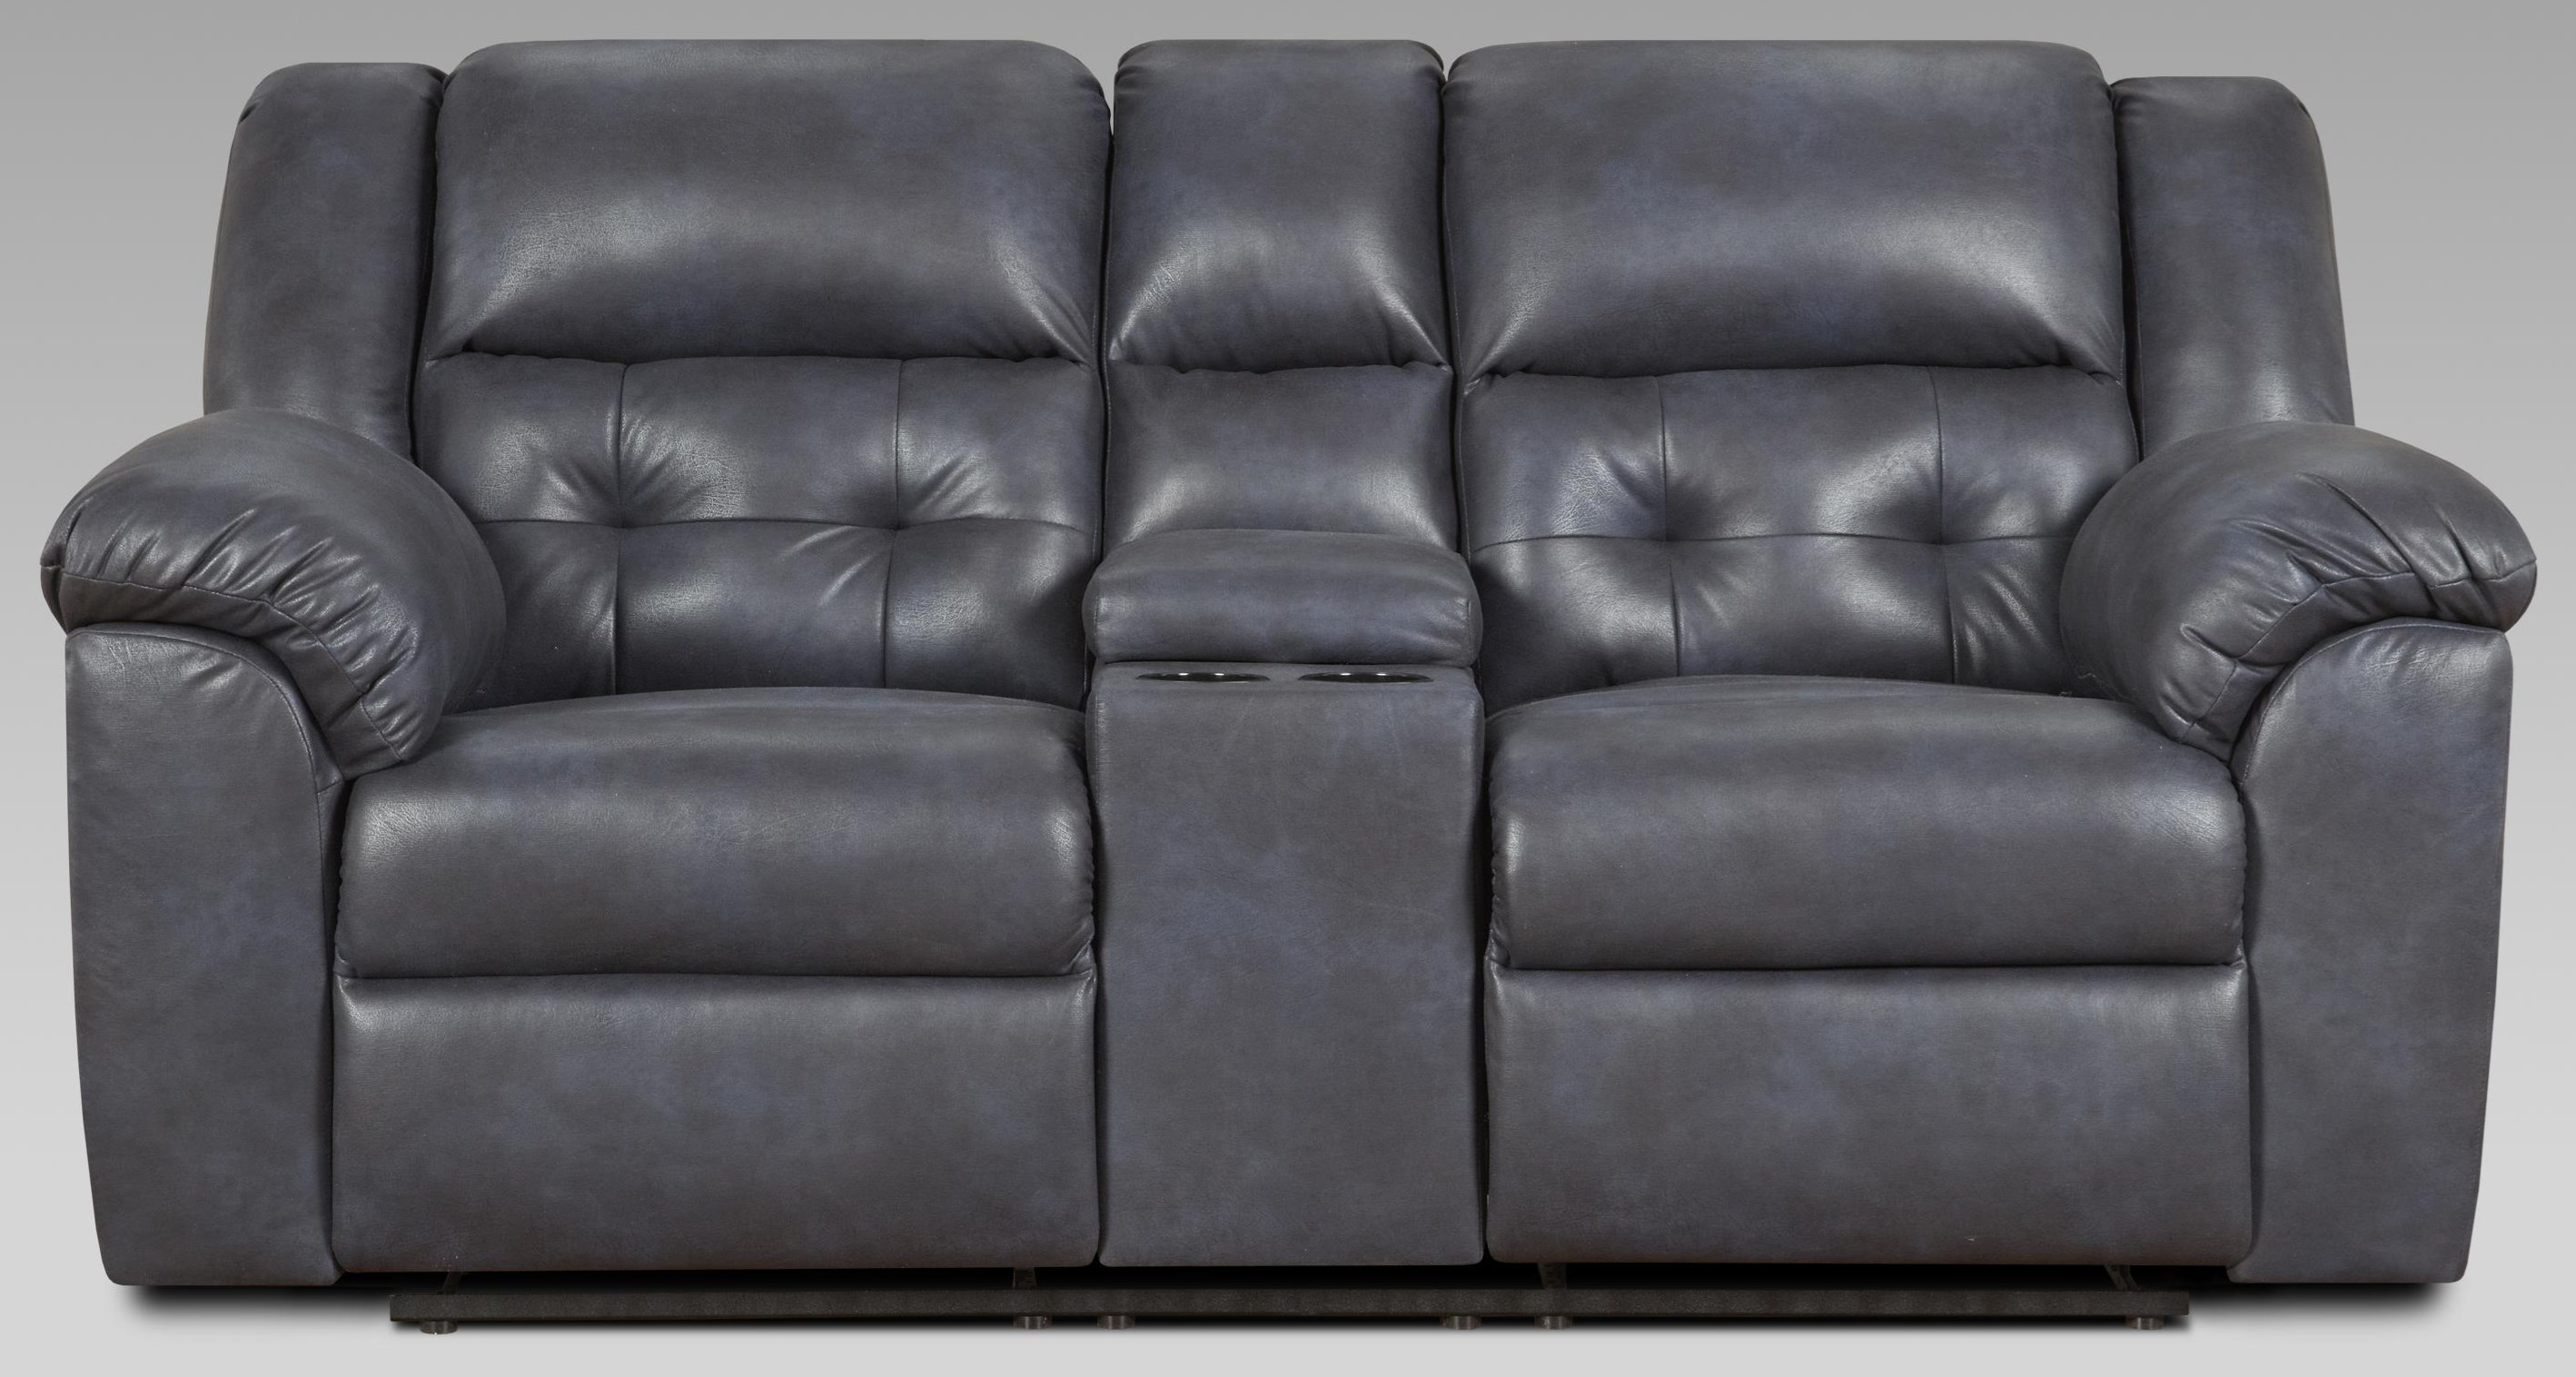 1500 Telluride Indigo Reclining Console Loveseat by Affordable Furniture at Furniture Fair - North Carolina